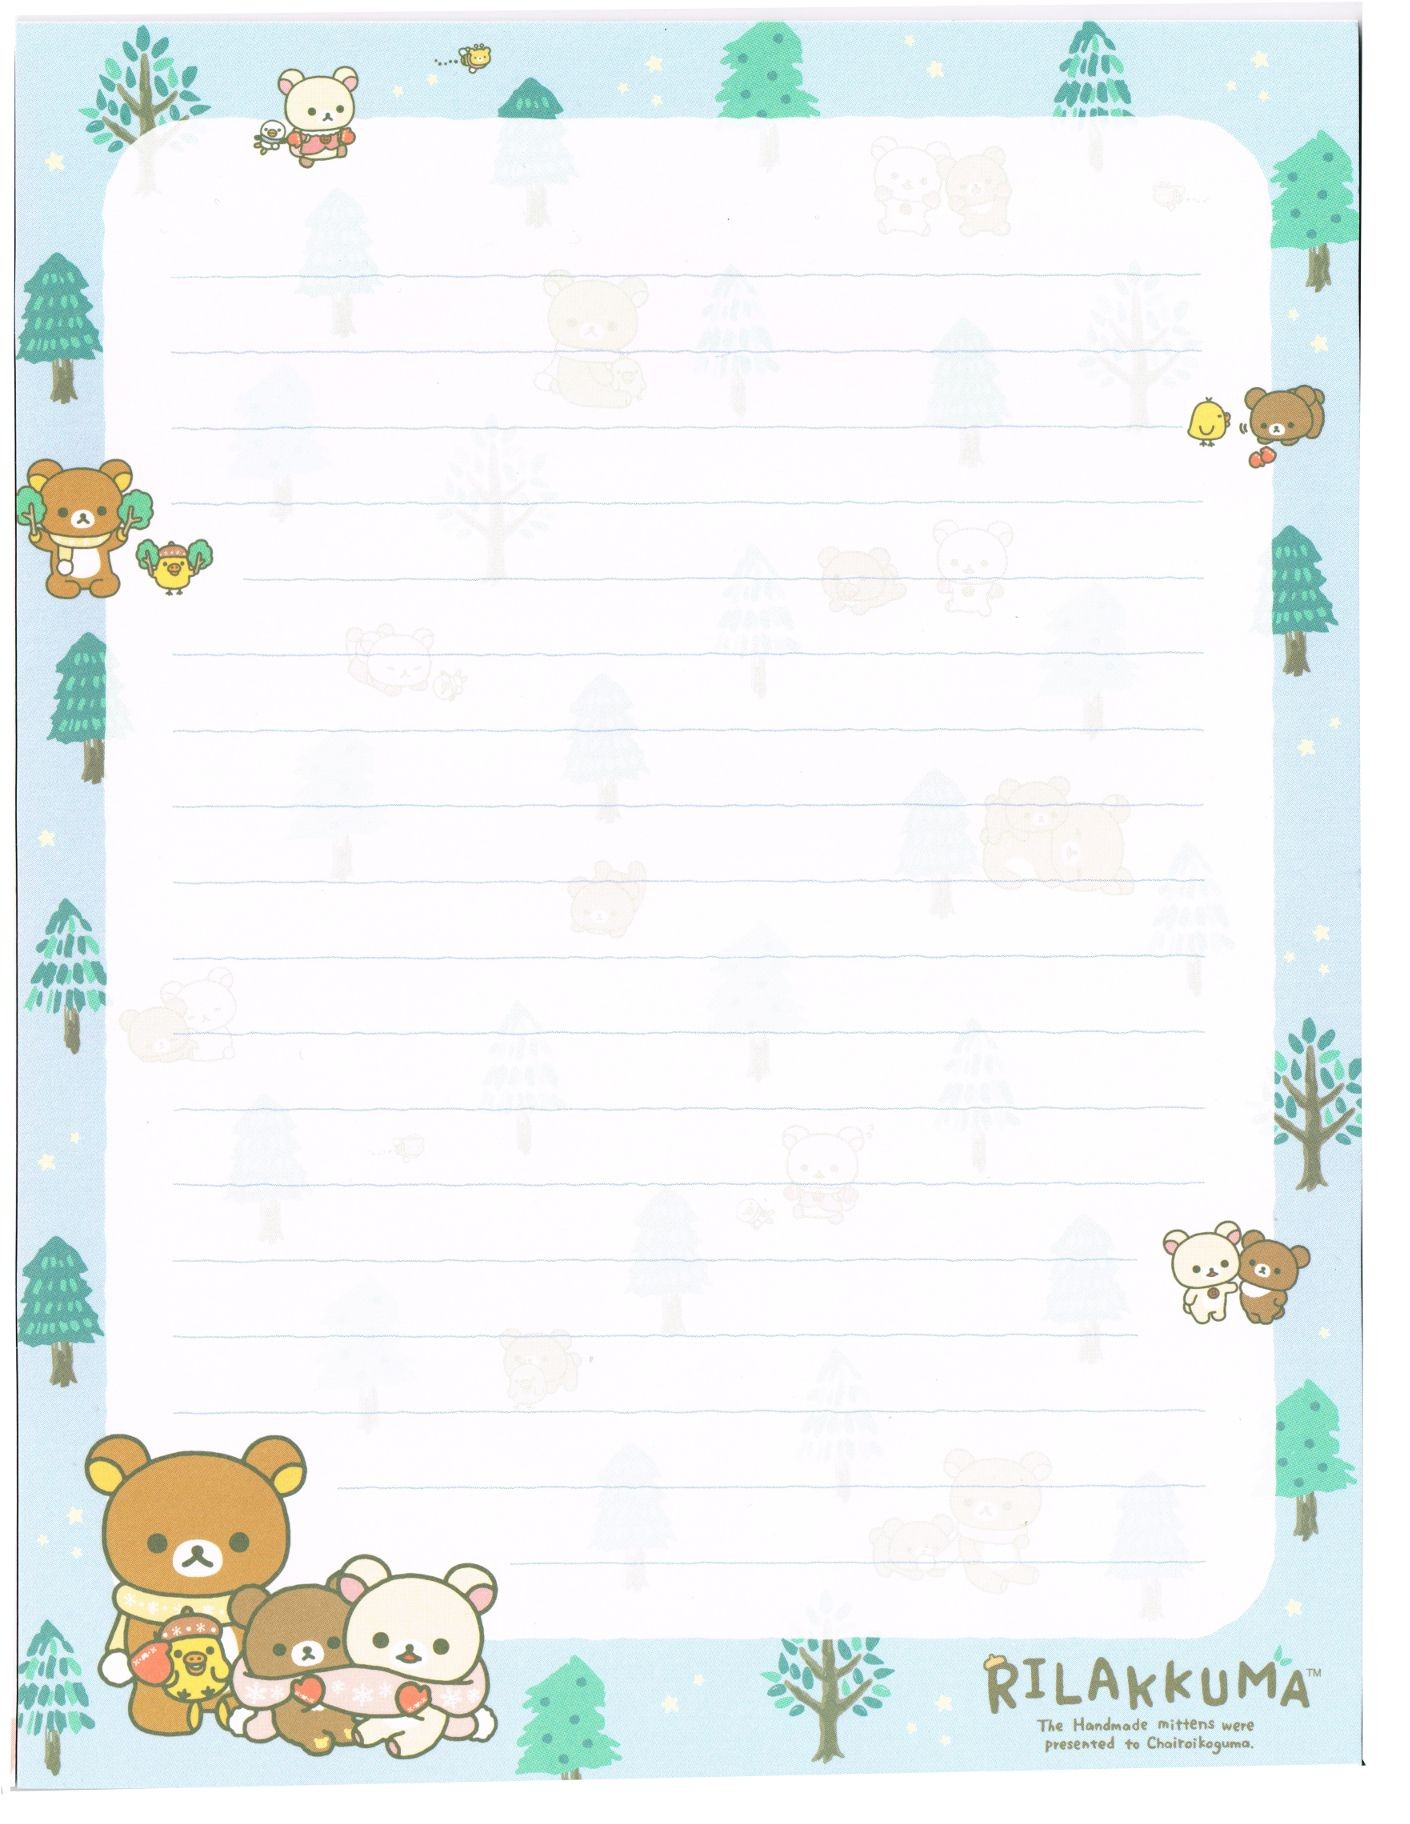 Calendario Para Imprimir 2019 Tumblr Más Actual Free Printable Winter nordic forest Writing Memo Pad Sheet Rilakkuma Of Calendario Para Imprimir 2019 Tumblr Más Arriba-a-fecha 81 Best каРендари Images On Pinterest